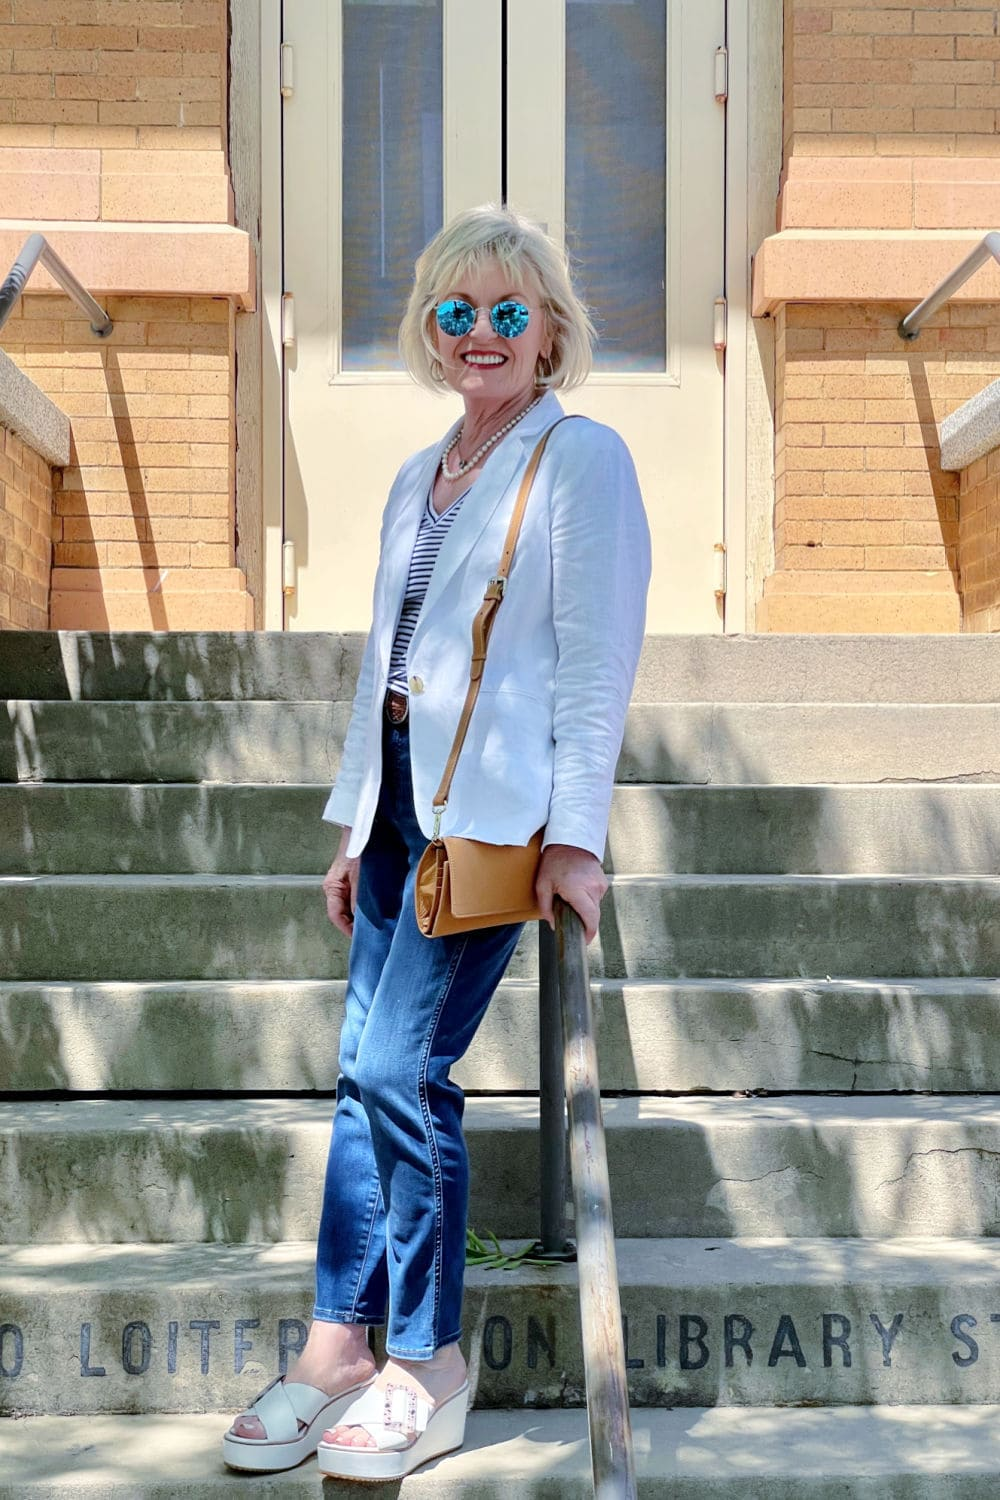 blonde woman leaning on railing os strair wearing white blazer and blue jeans